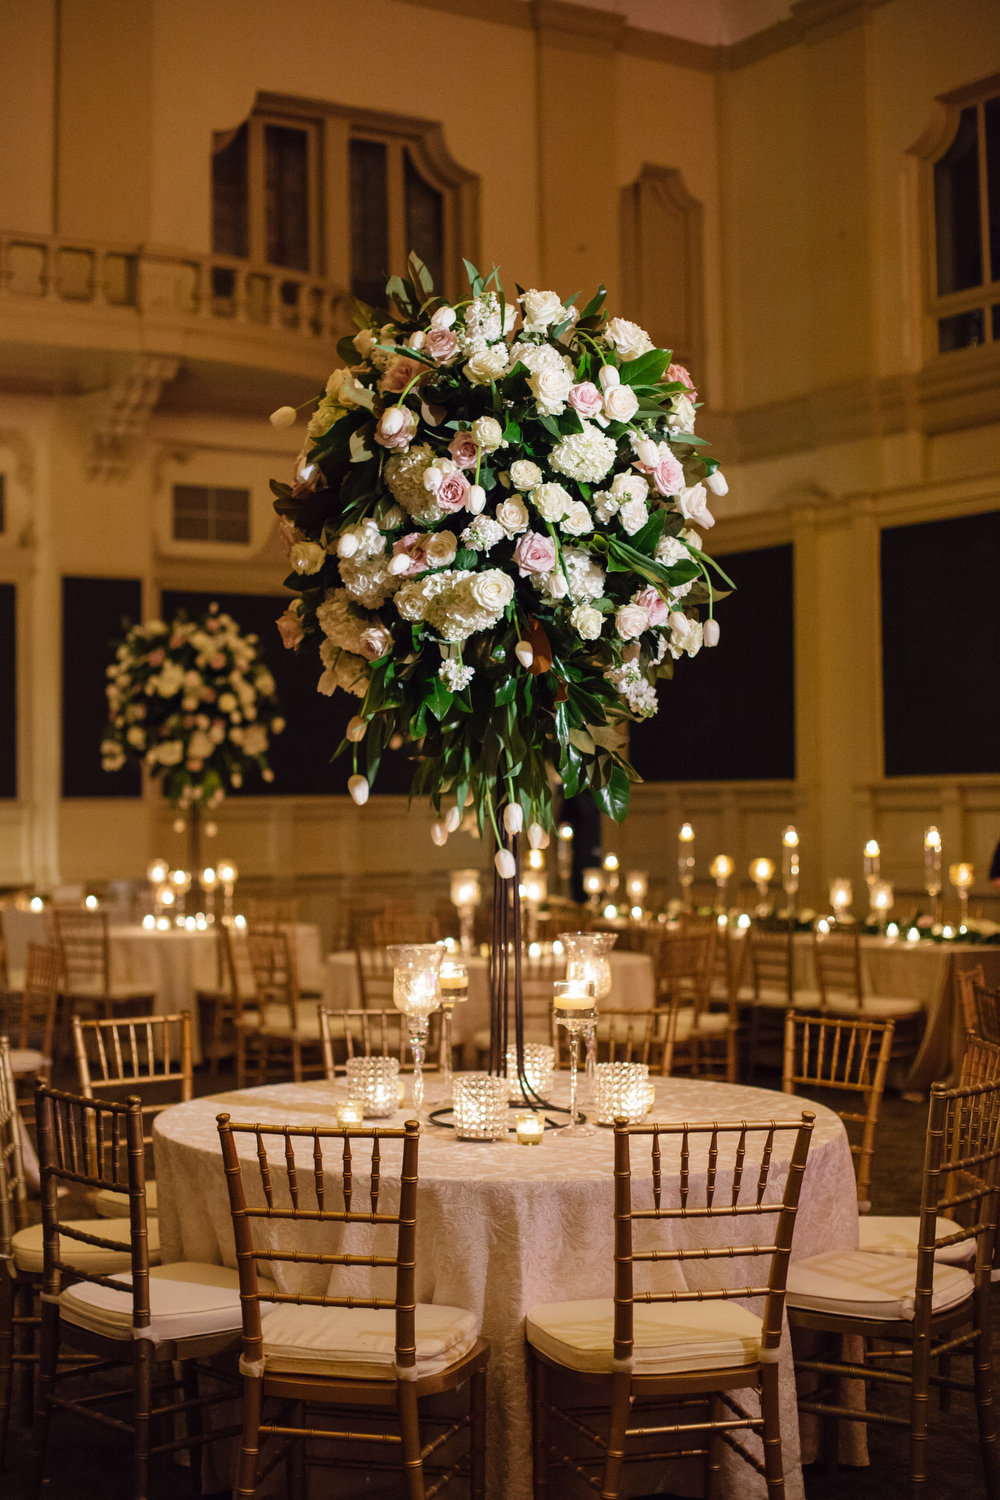 How to transform an open ballroom with stunning decor | Sapphire Events | Greer G Photography | Board of Trade | White and Gold Wedding | Winter Wedding Inspiration | White and Green Wedding | Ballroom wedding | tall floral centerpiece with magnolia leaves